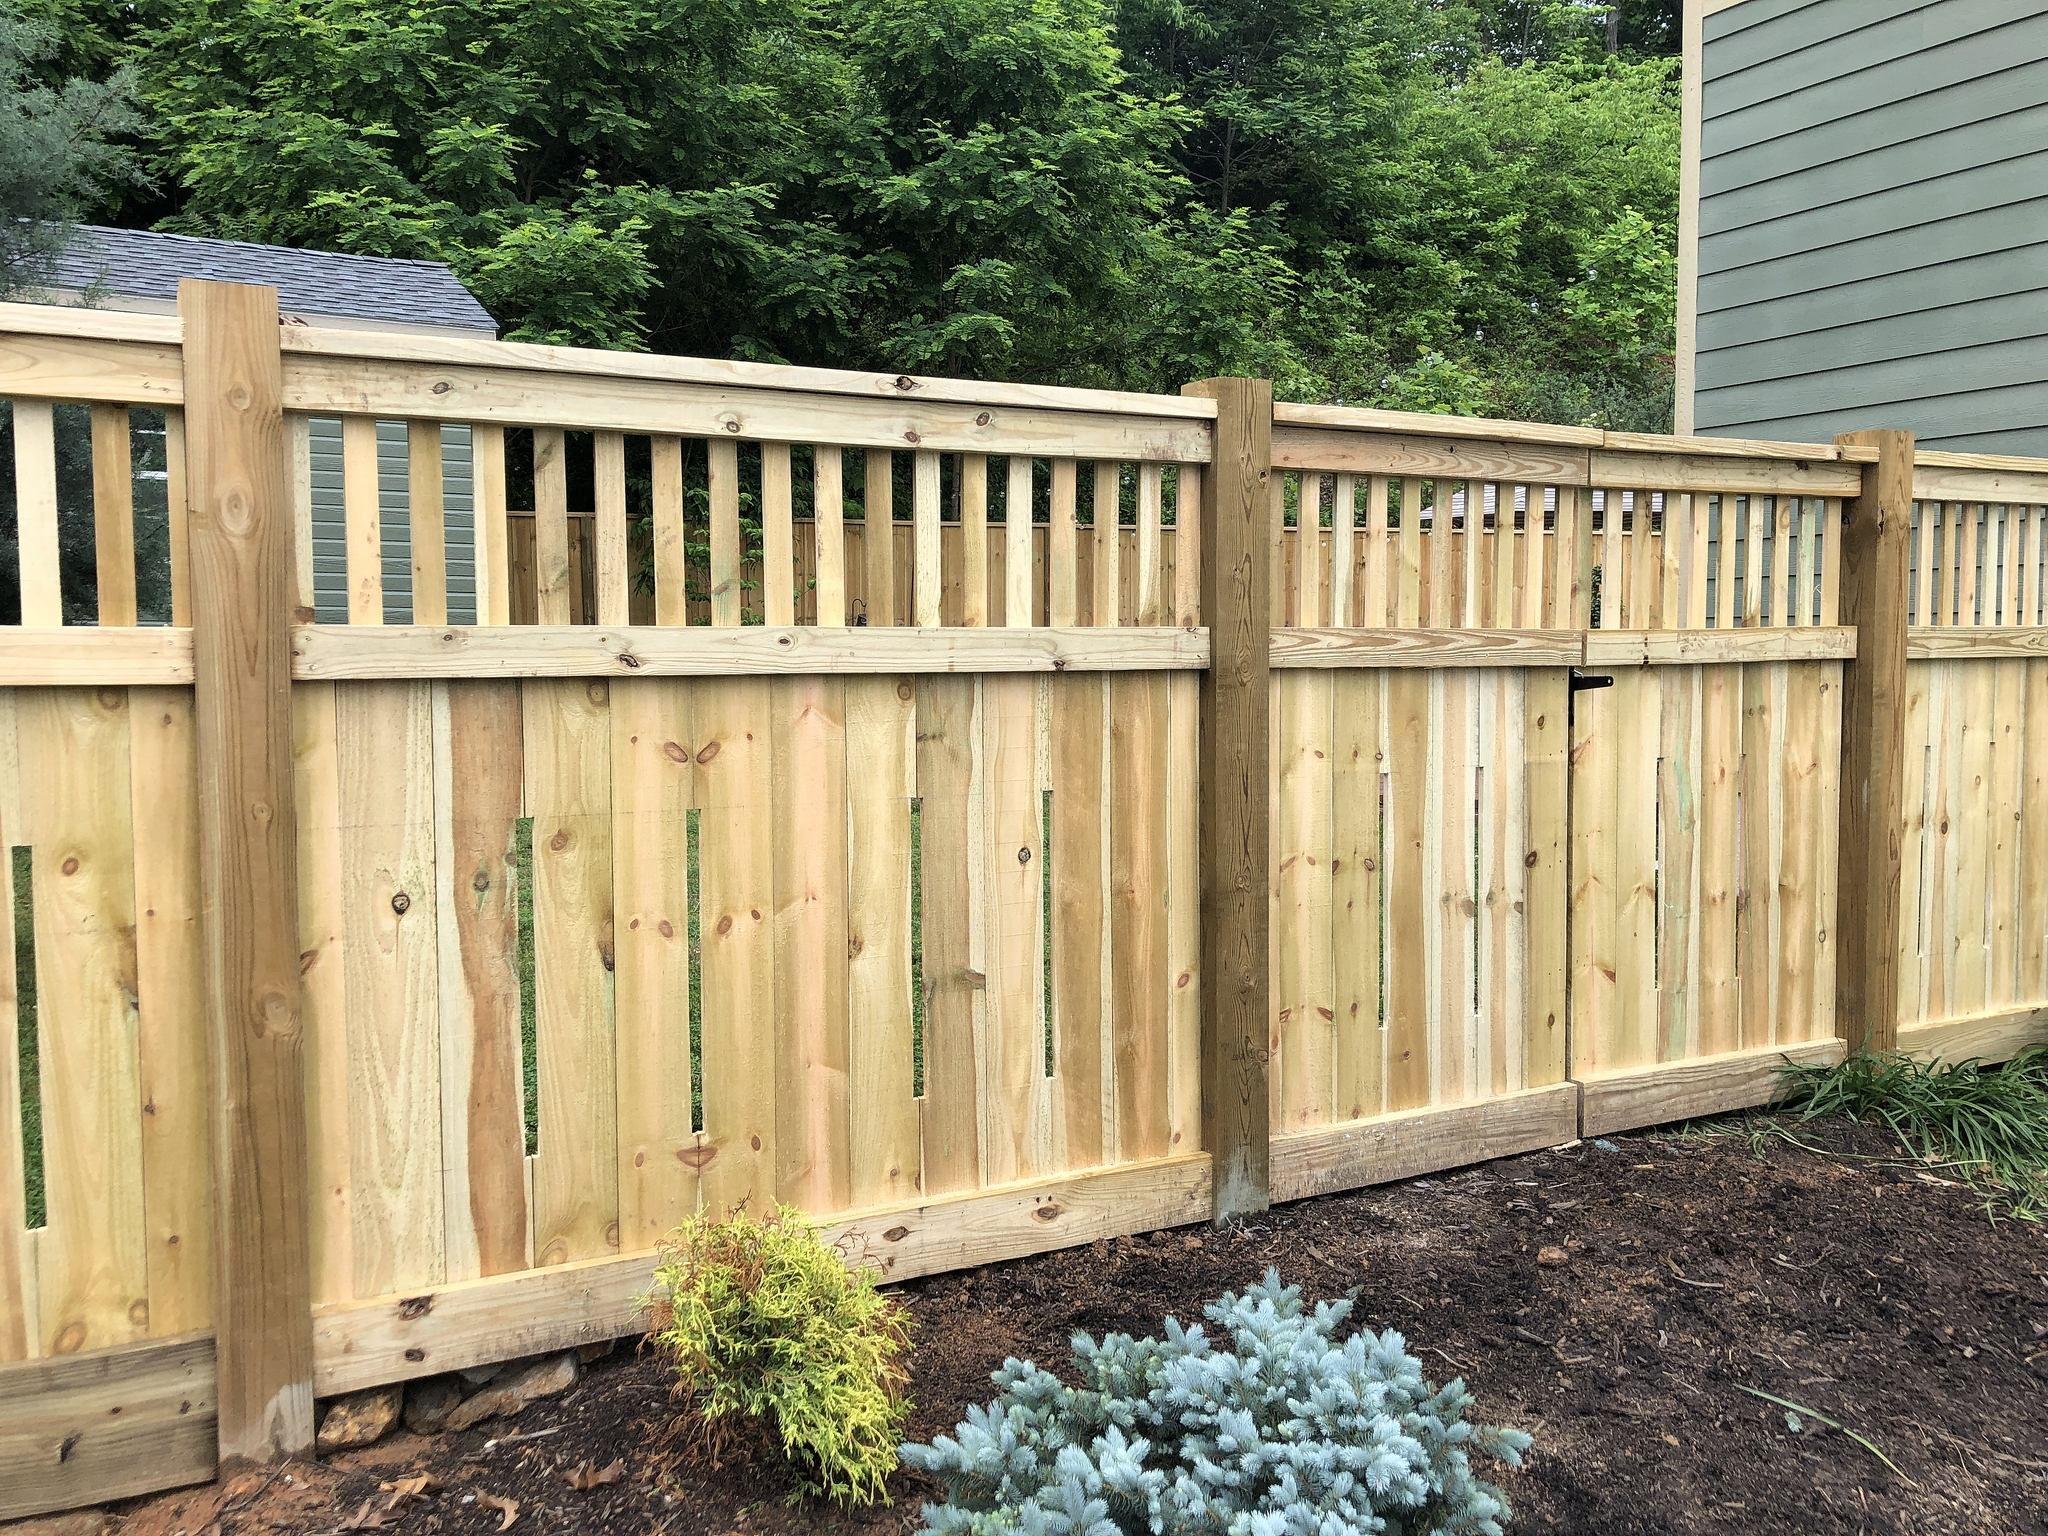 Residential wooden fence on mulch